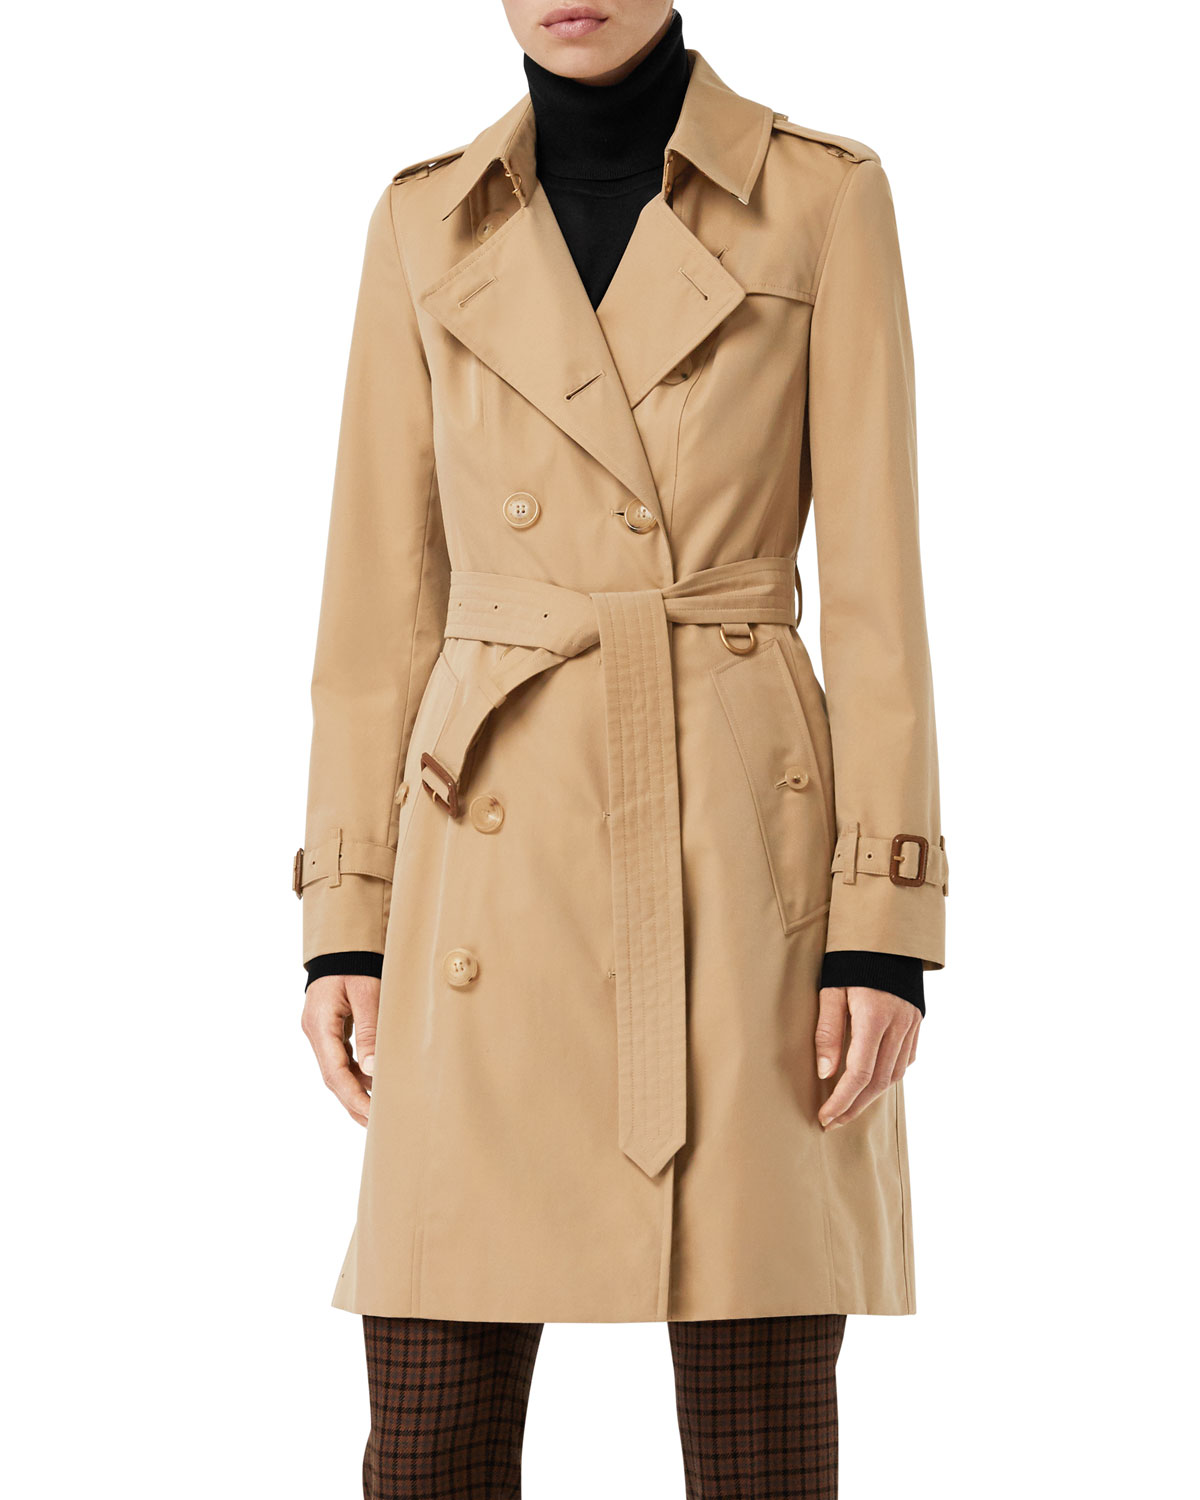 Burberry Chelsea Heritage Slim-Fit Trench Coat   Neiman Marcus d196ccd0f5c